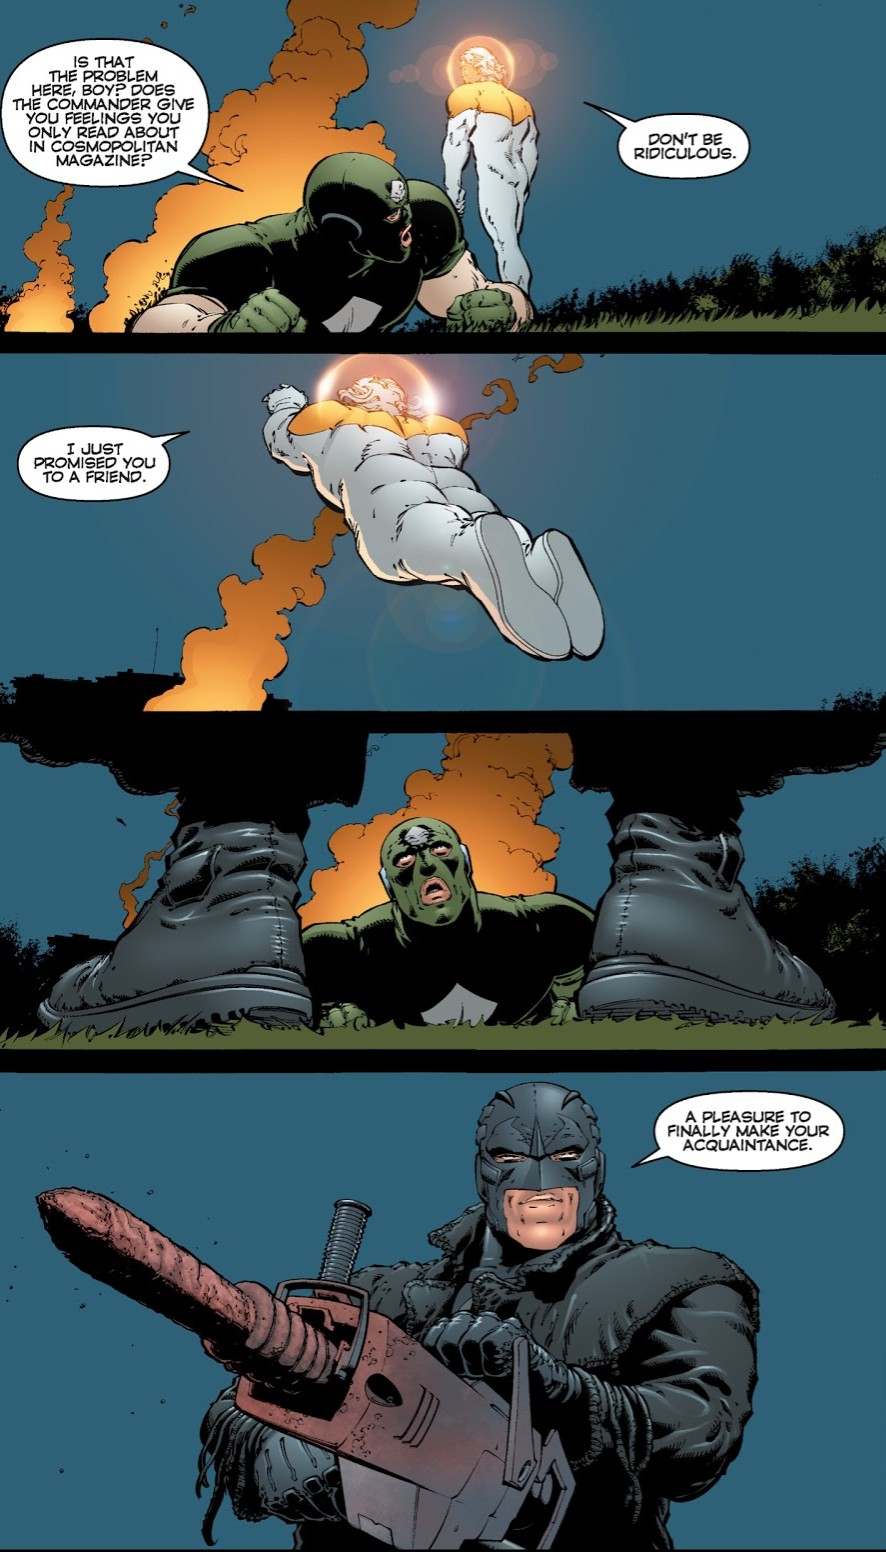 In 'The Authority' (2000) #16, Midnighter avenges Apollo's rape by The Commander with a jackhammer.